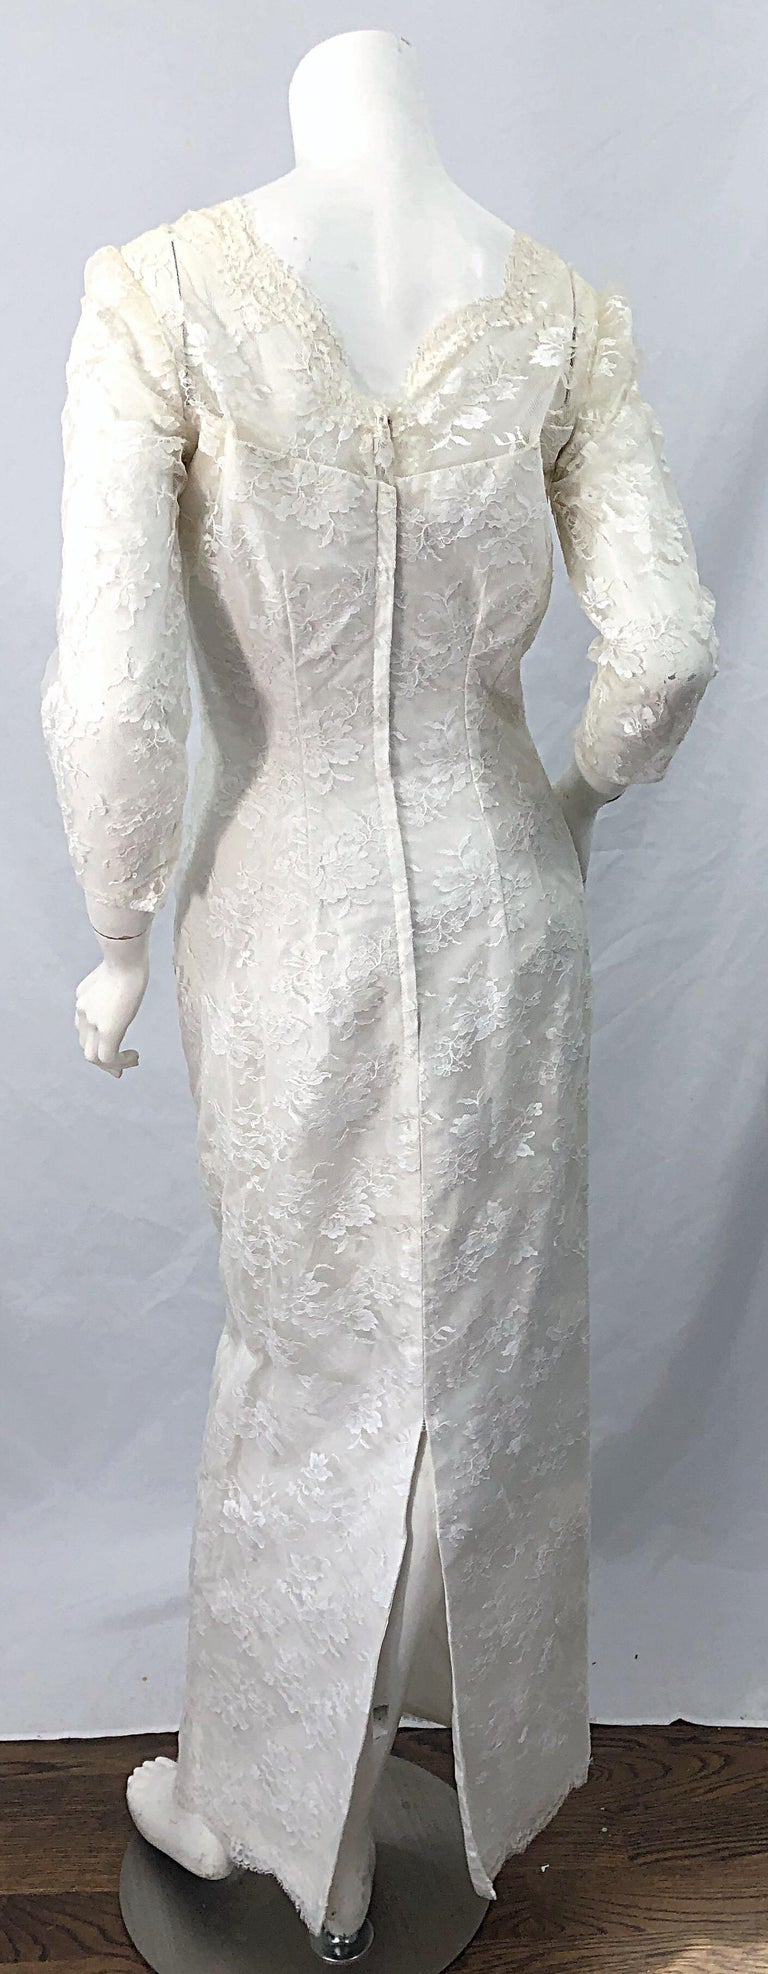 1960s An Original By Constantino White Beaded Couture Vintage Wedding Dress Gown For Sale 2